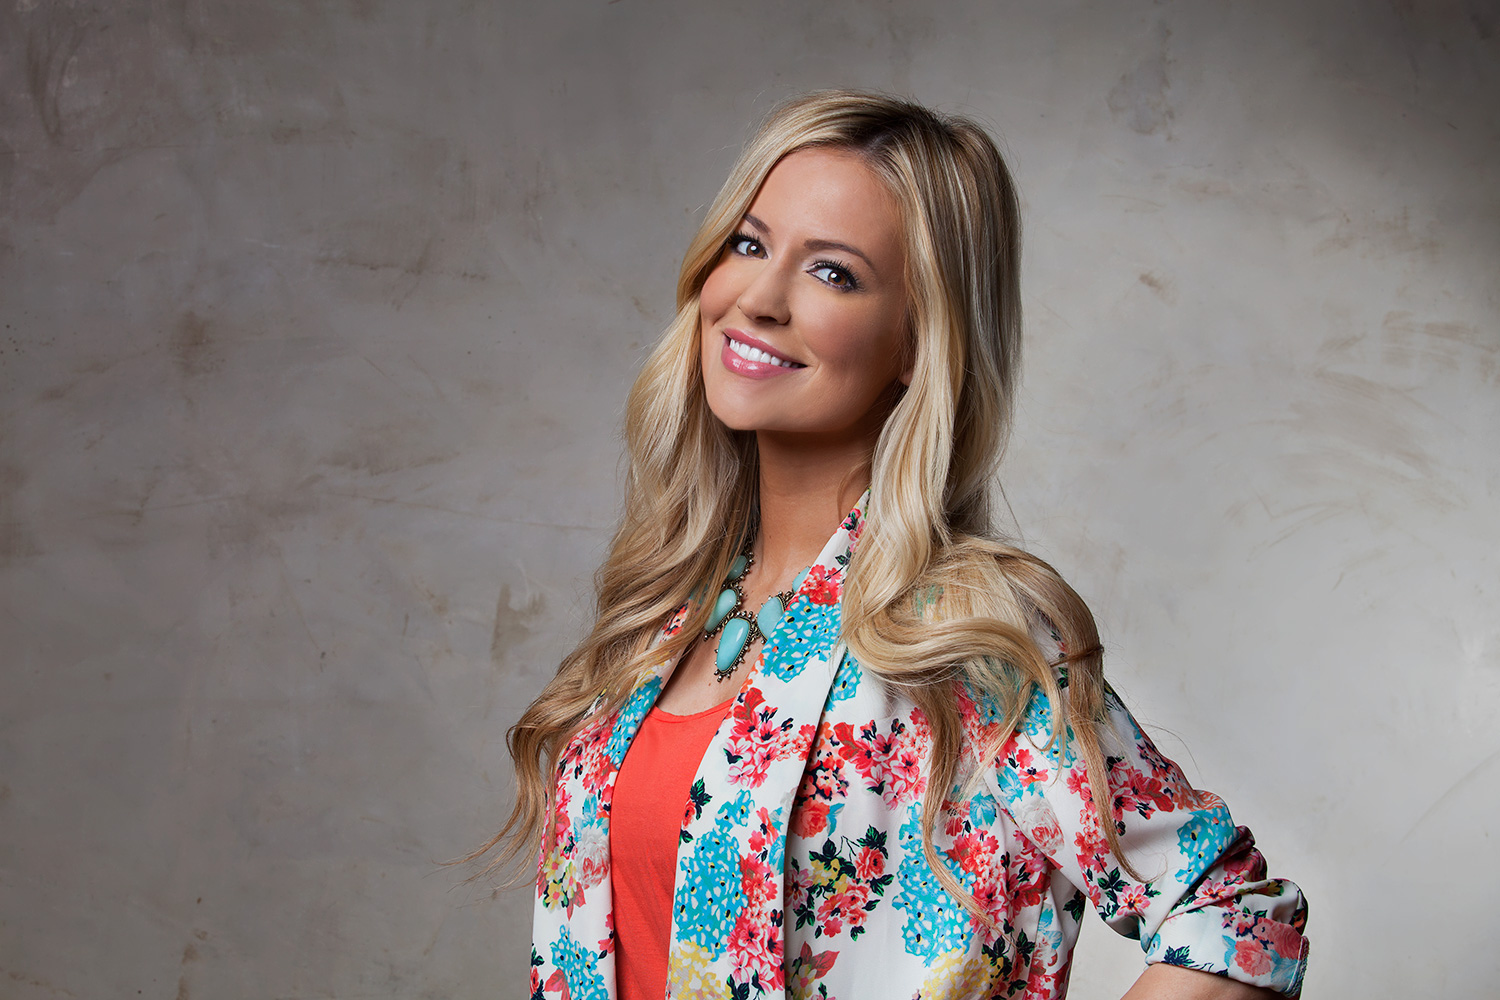 Life after 'The Bachelorette' with Emily Maynard